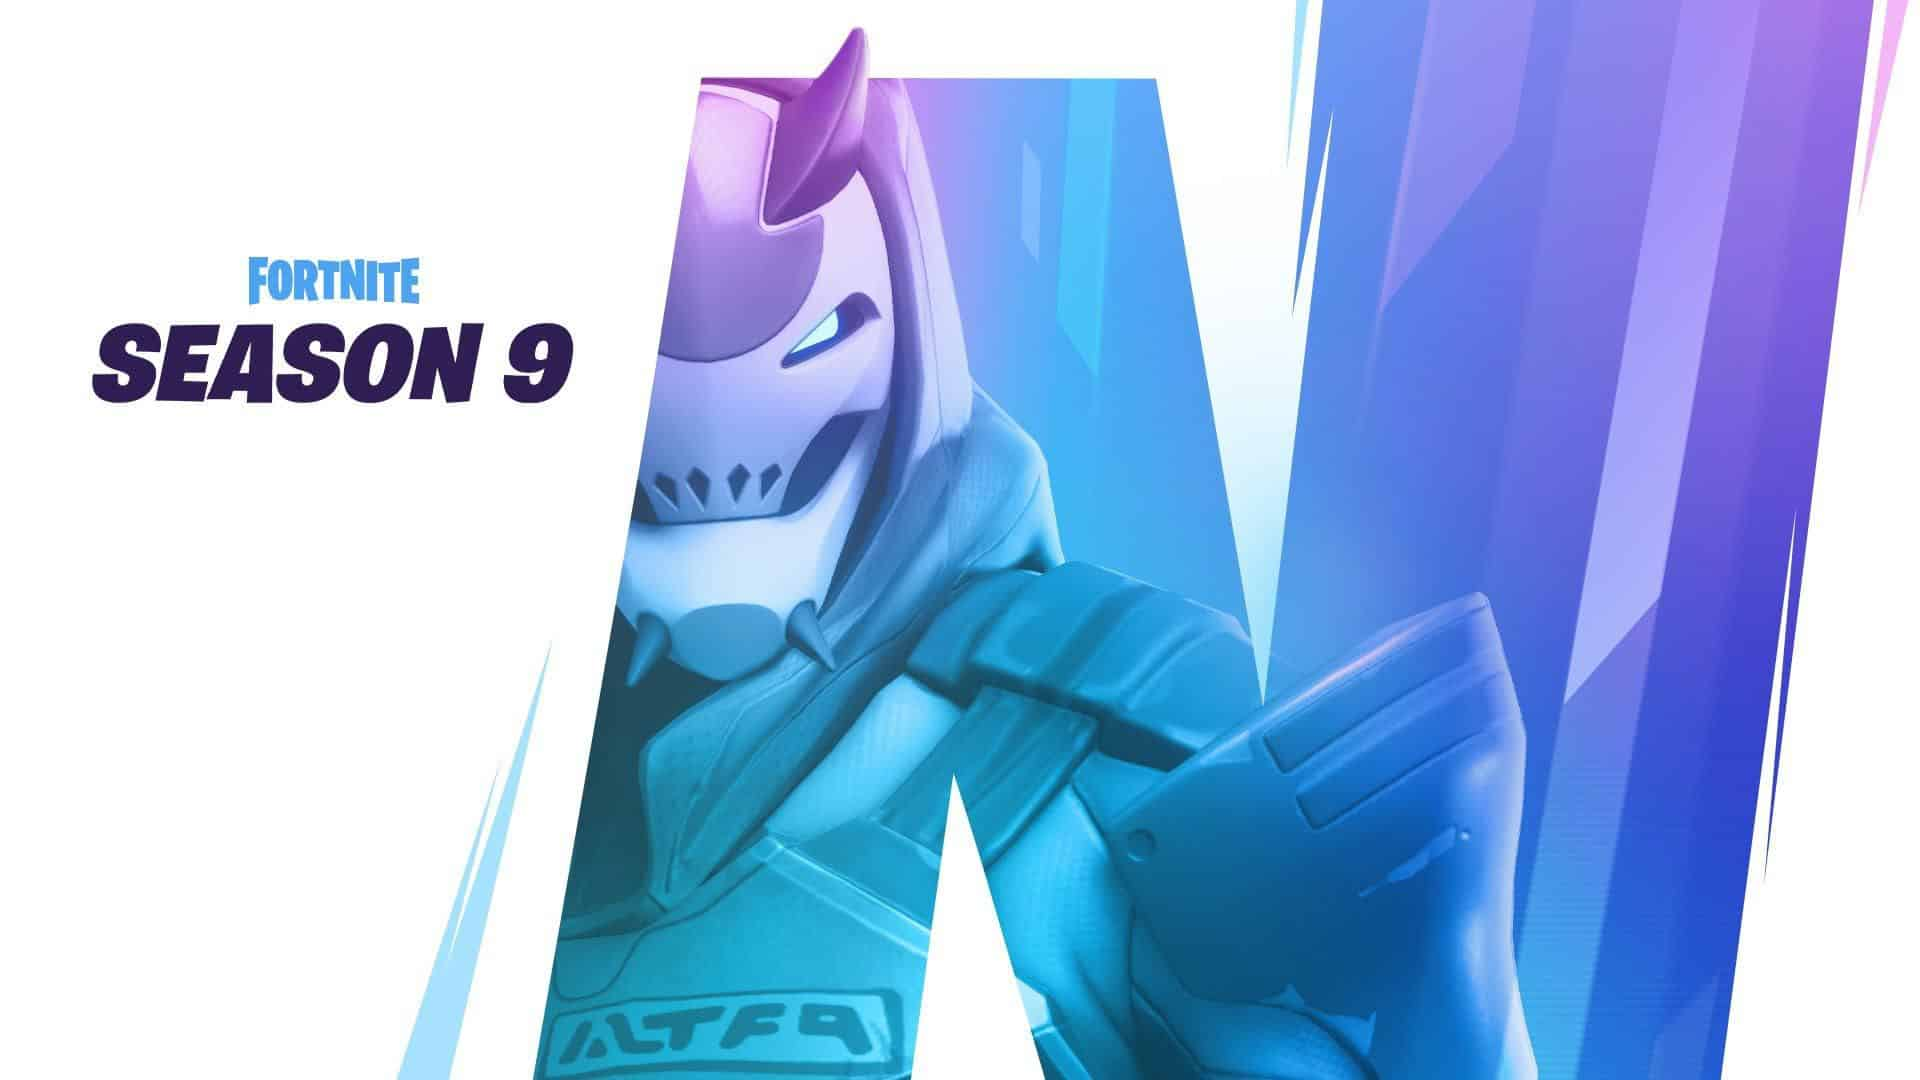 VIDEOS: Fortnite Season 9 Is Here – The Future is Yours